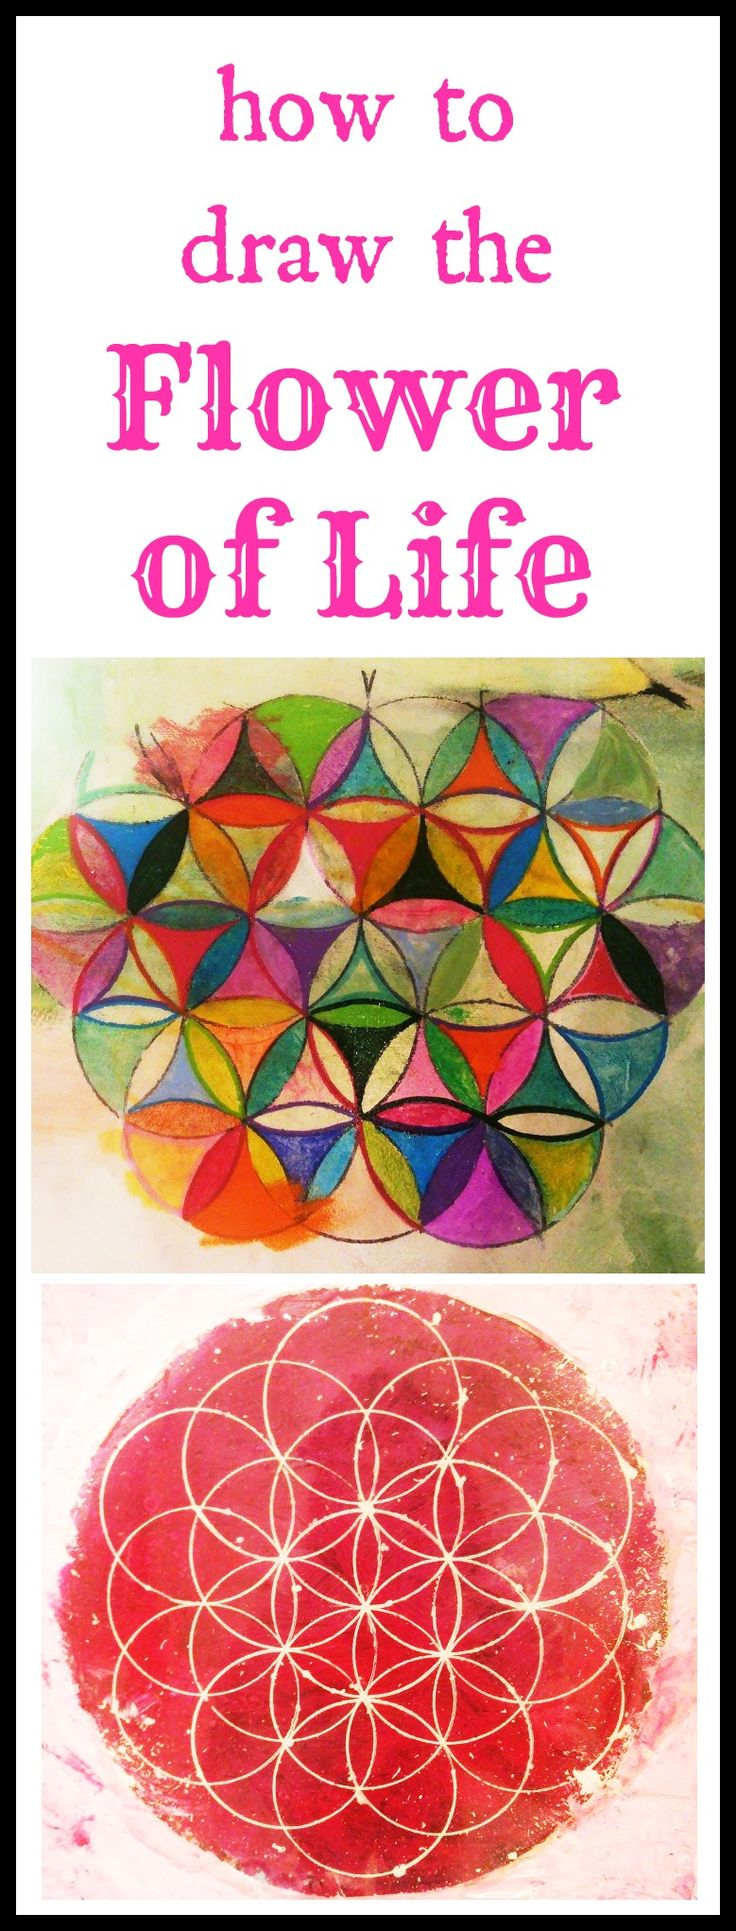 92 best oil acrylic paintings images on pinterest for How to draw the flower of life step by step